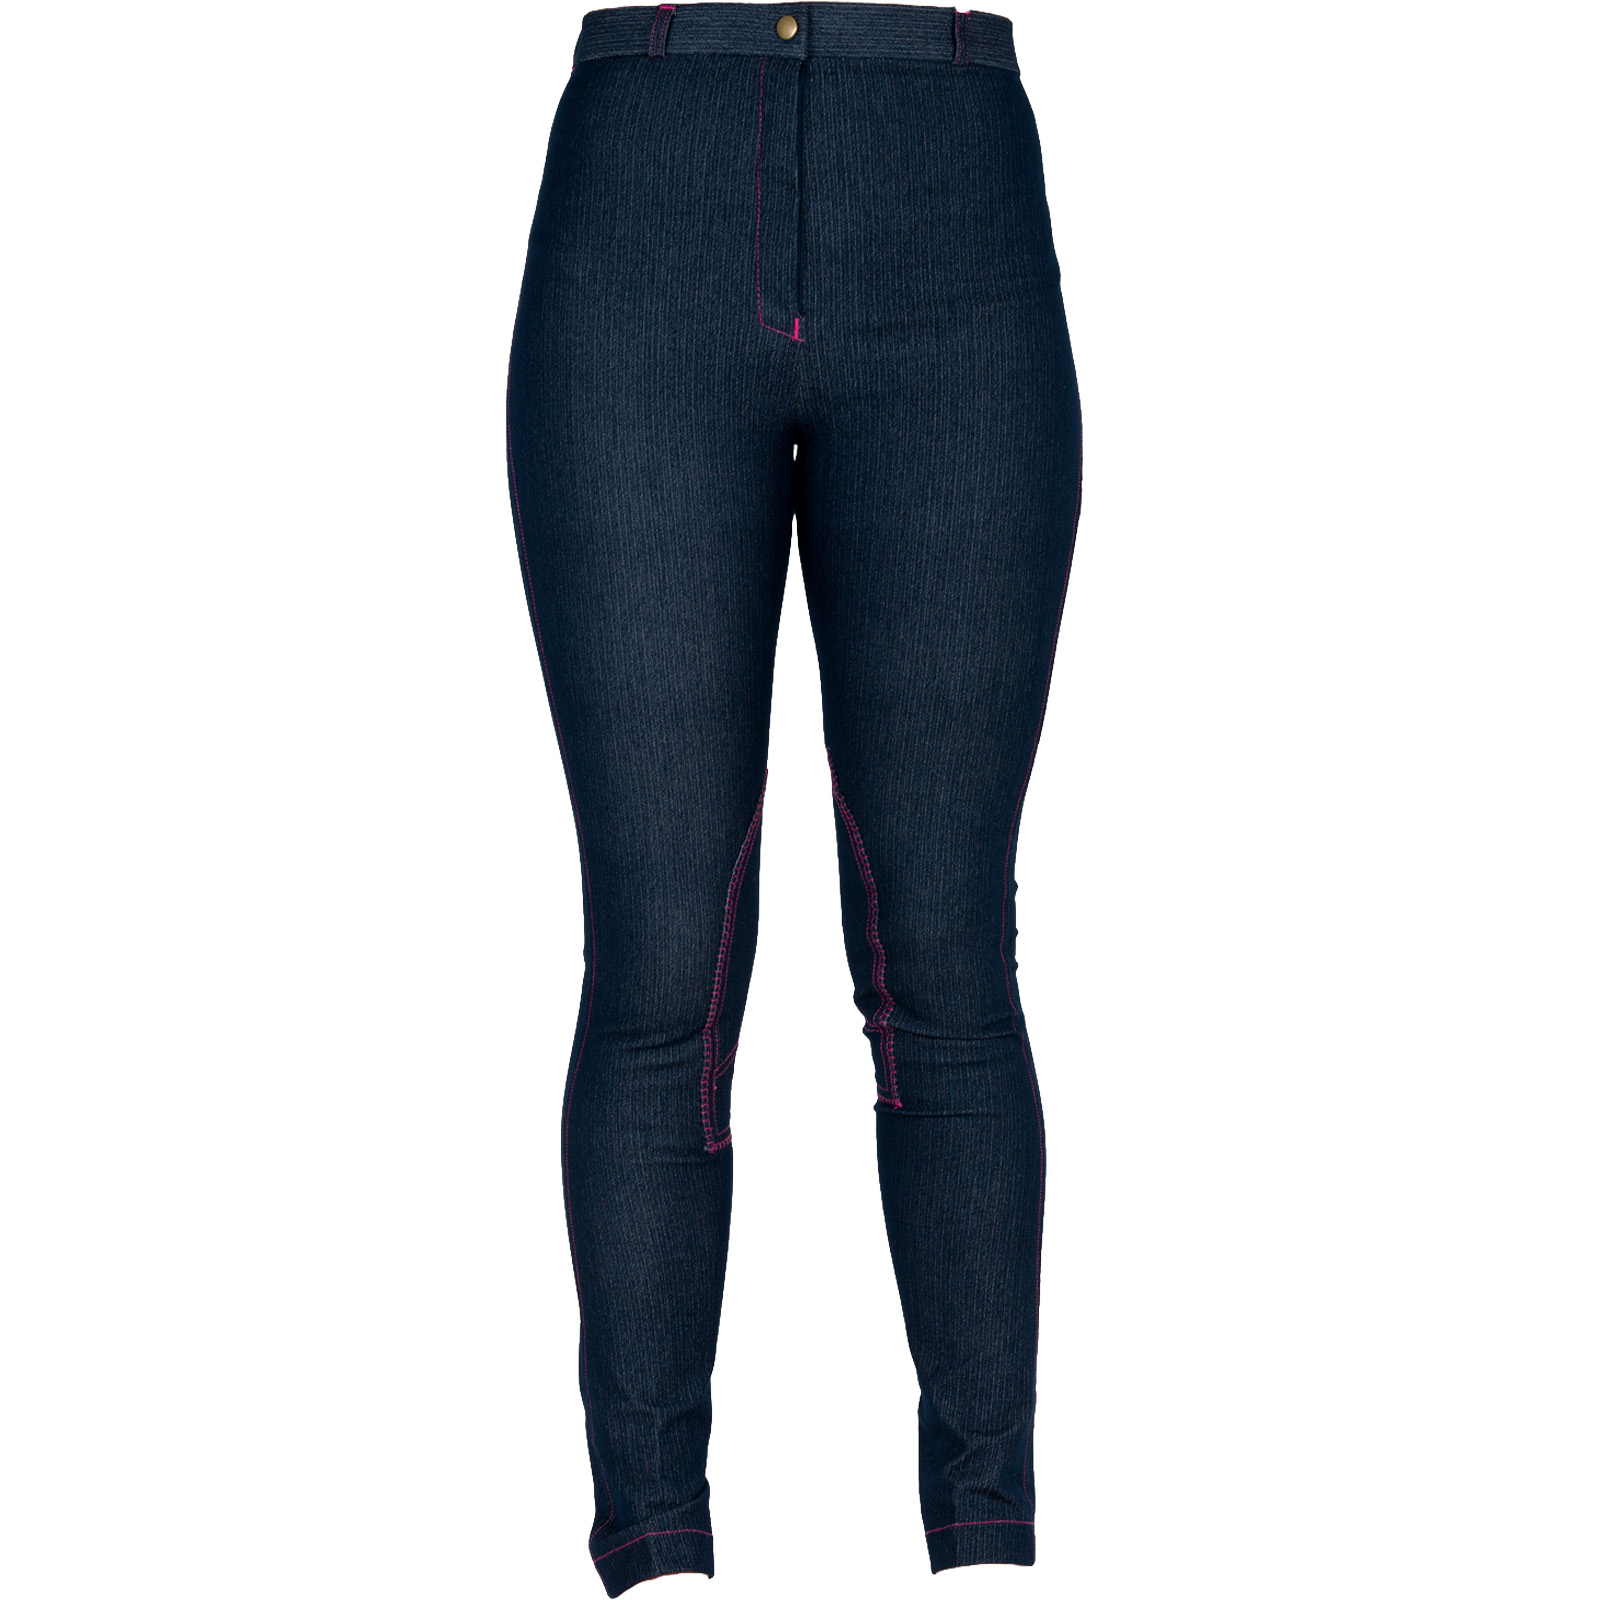 LADIES EQUESTRIAN HORSE RIDING GIRLS SHOWING JODS BREECHES JODHPURS SIZE 24-38